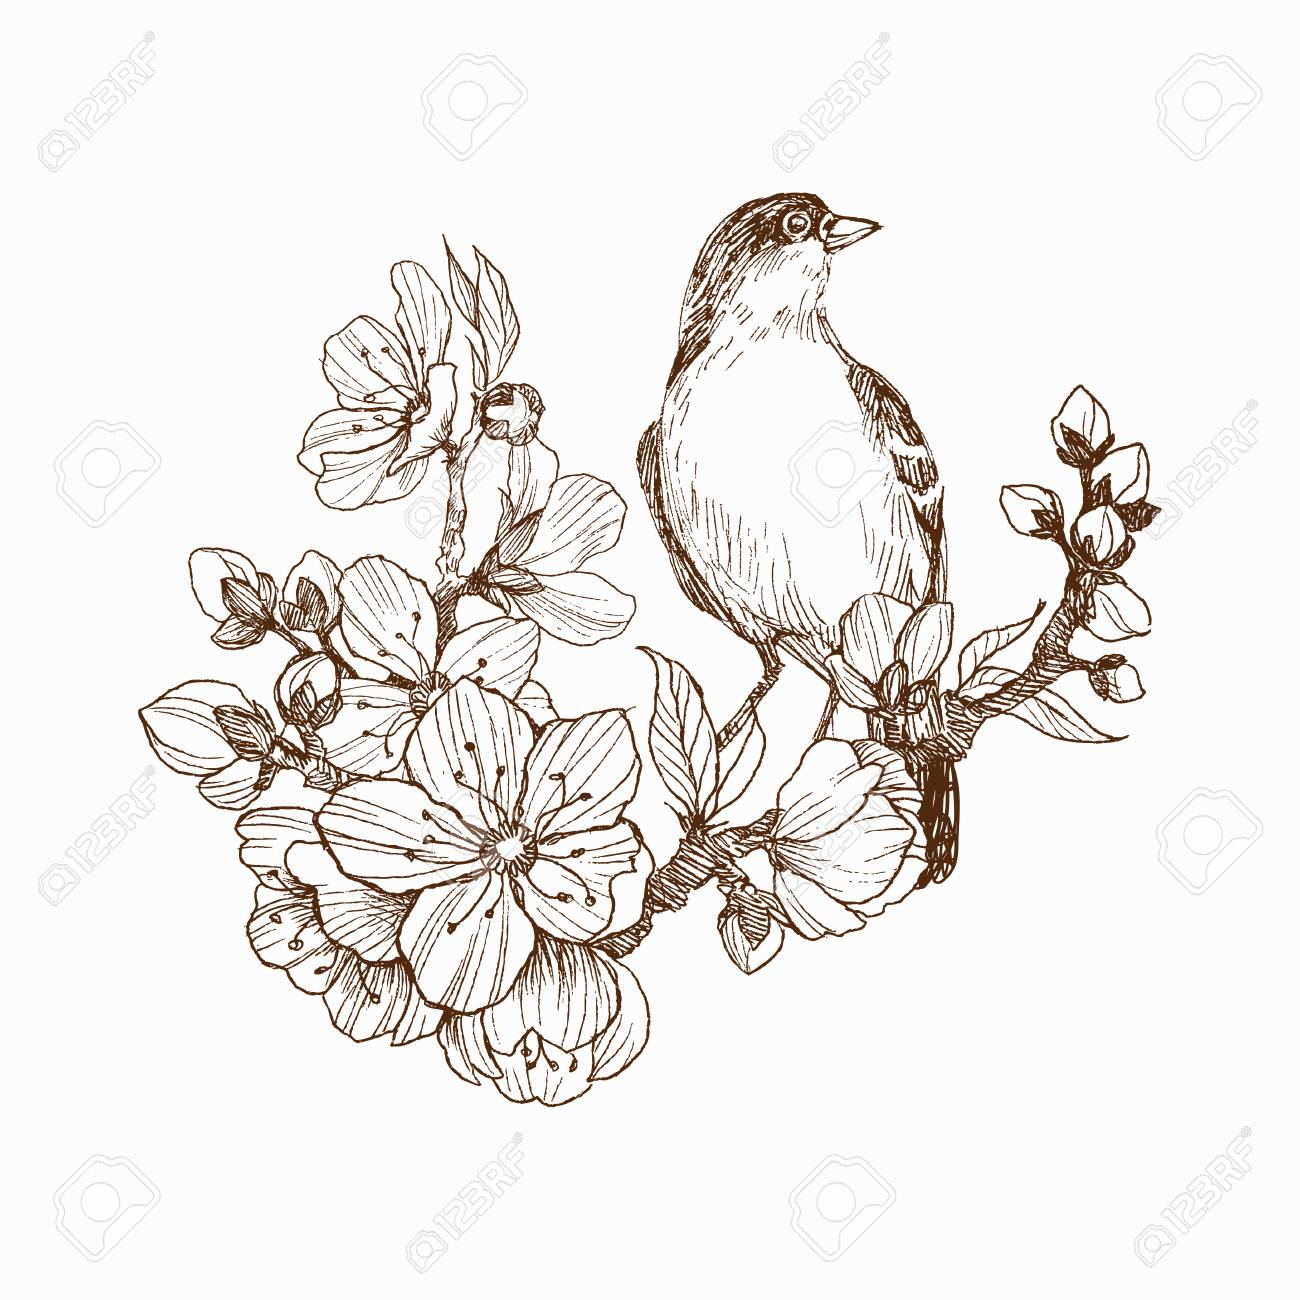 Vector Illustration Of Hand Drawn Bird On Blooming Brunch Graphic